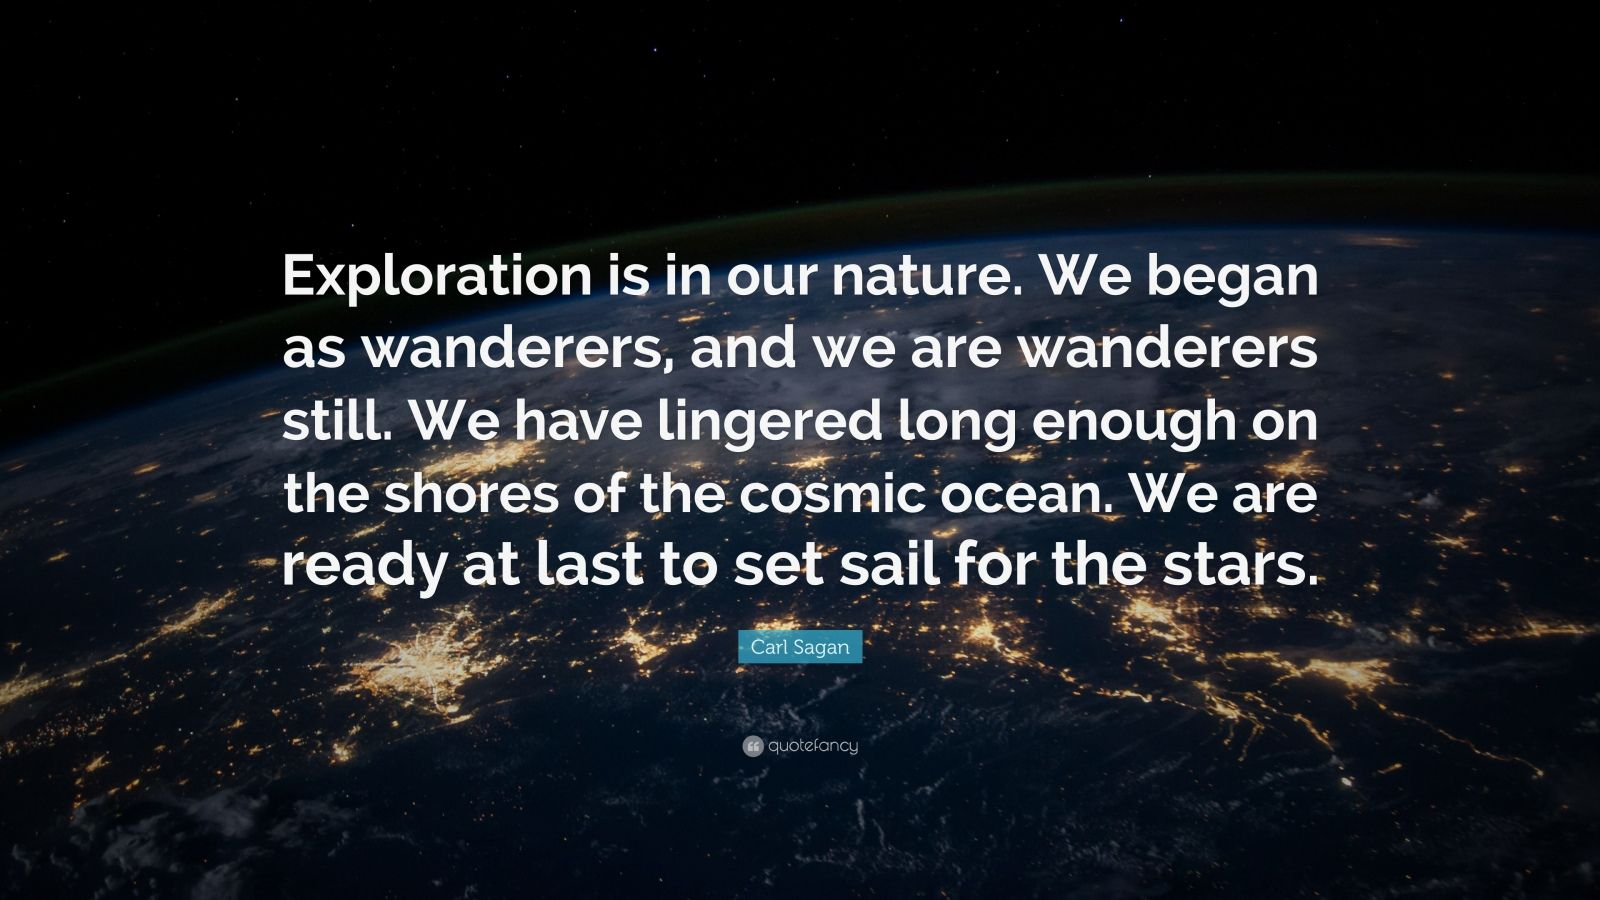 """Carl Sagan Quote: """"Exploration is in our nature. We began as wanderers, and we are wanderers still. We have lingered long enough on the shores of the cosmic ocean. We are ready at last to set sail for the stars."""""""